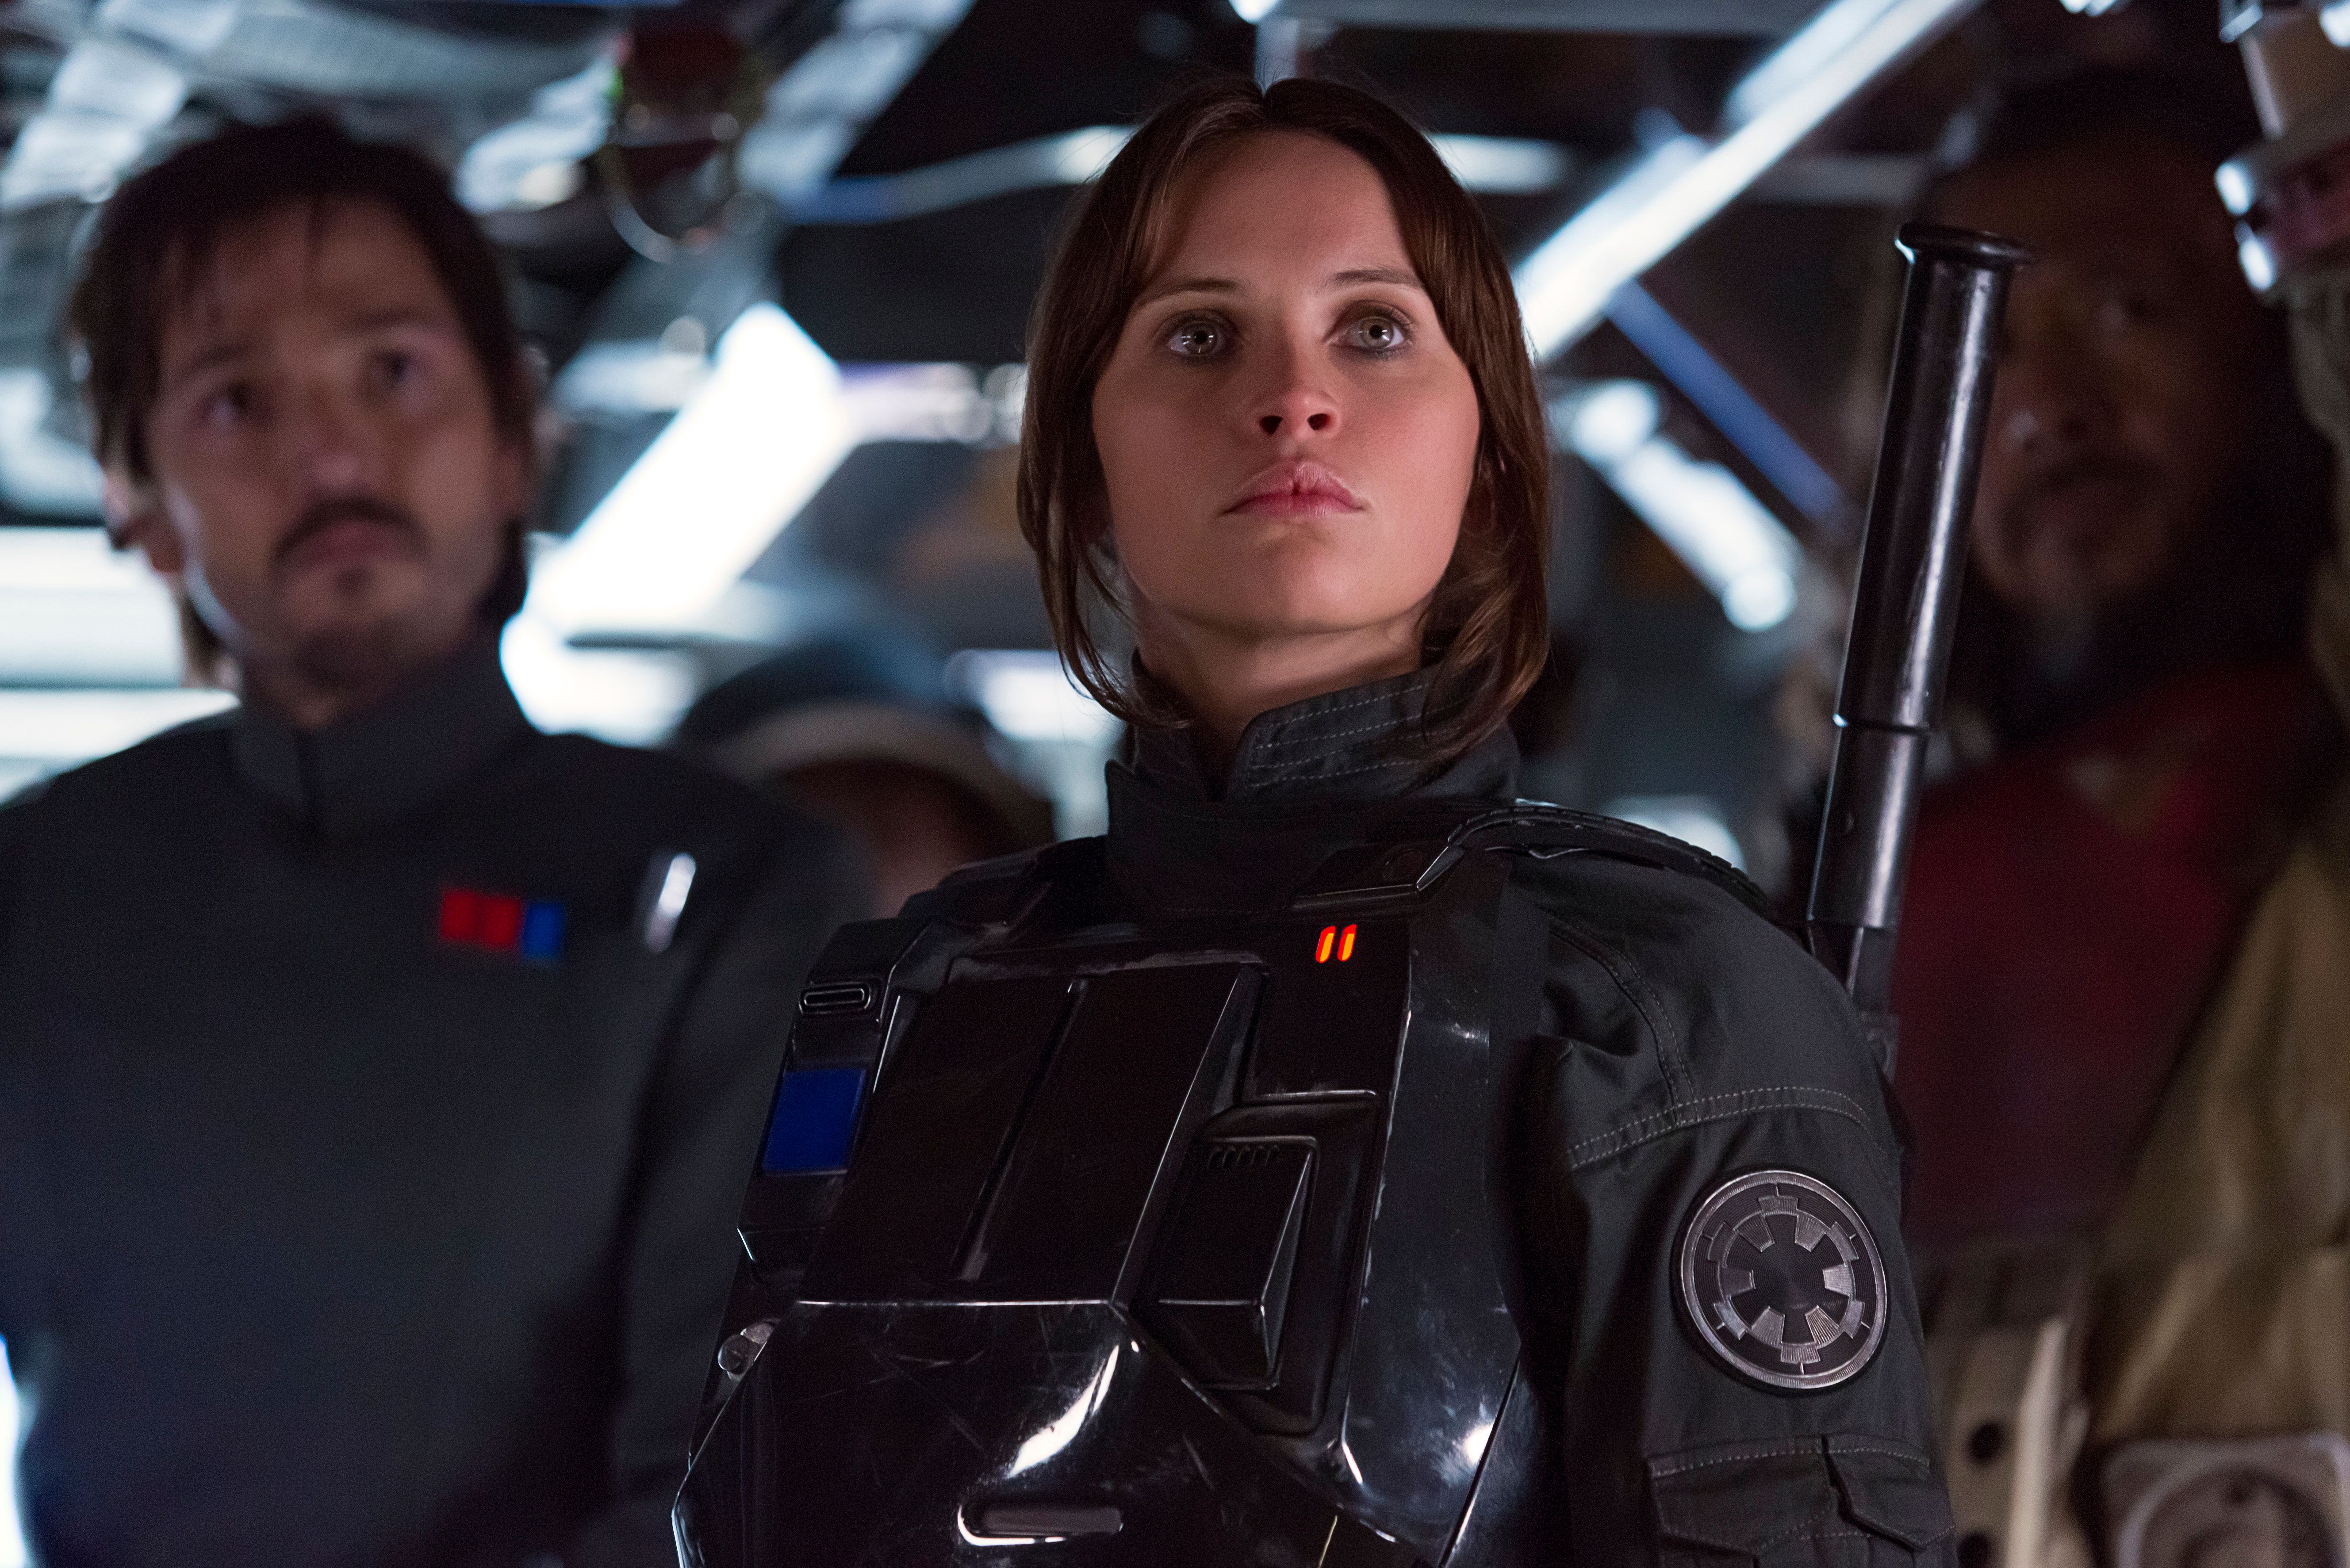 Rogue One: A Star Wars Story..L to R: Cassian Andor (Diego Luna), Jyn Erso (Felicity Jones), and Baze Malbus (Jiang Wen)..Ph: Giles Keyte..© 2016 Lucasfilm Ltd. All Rights Reserved.